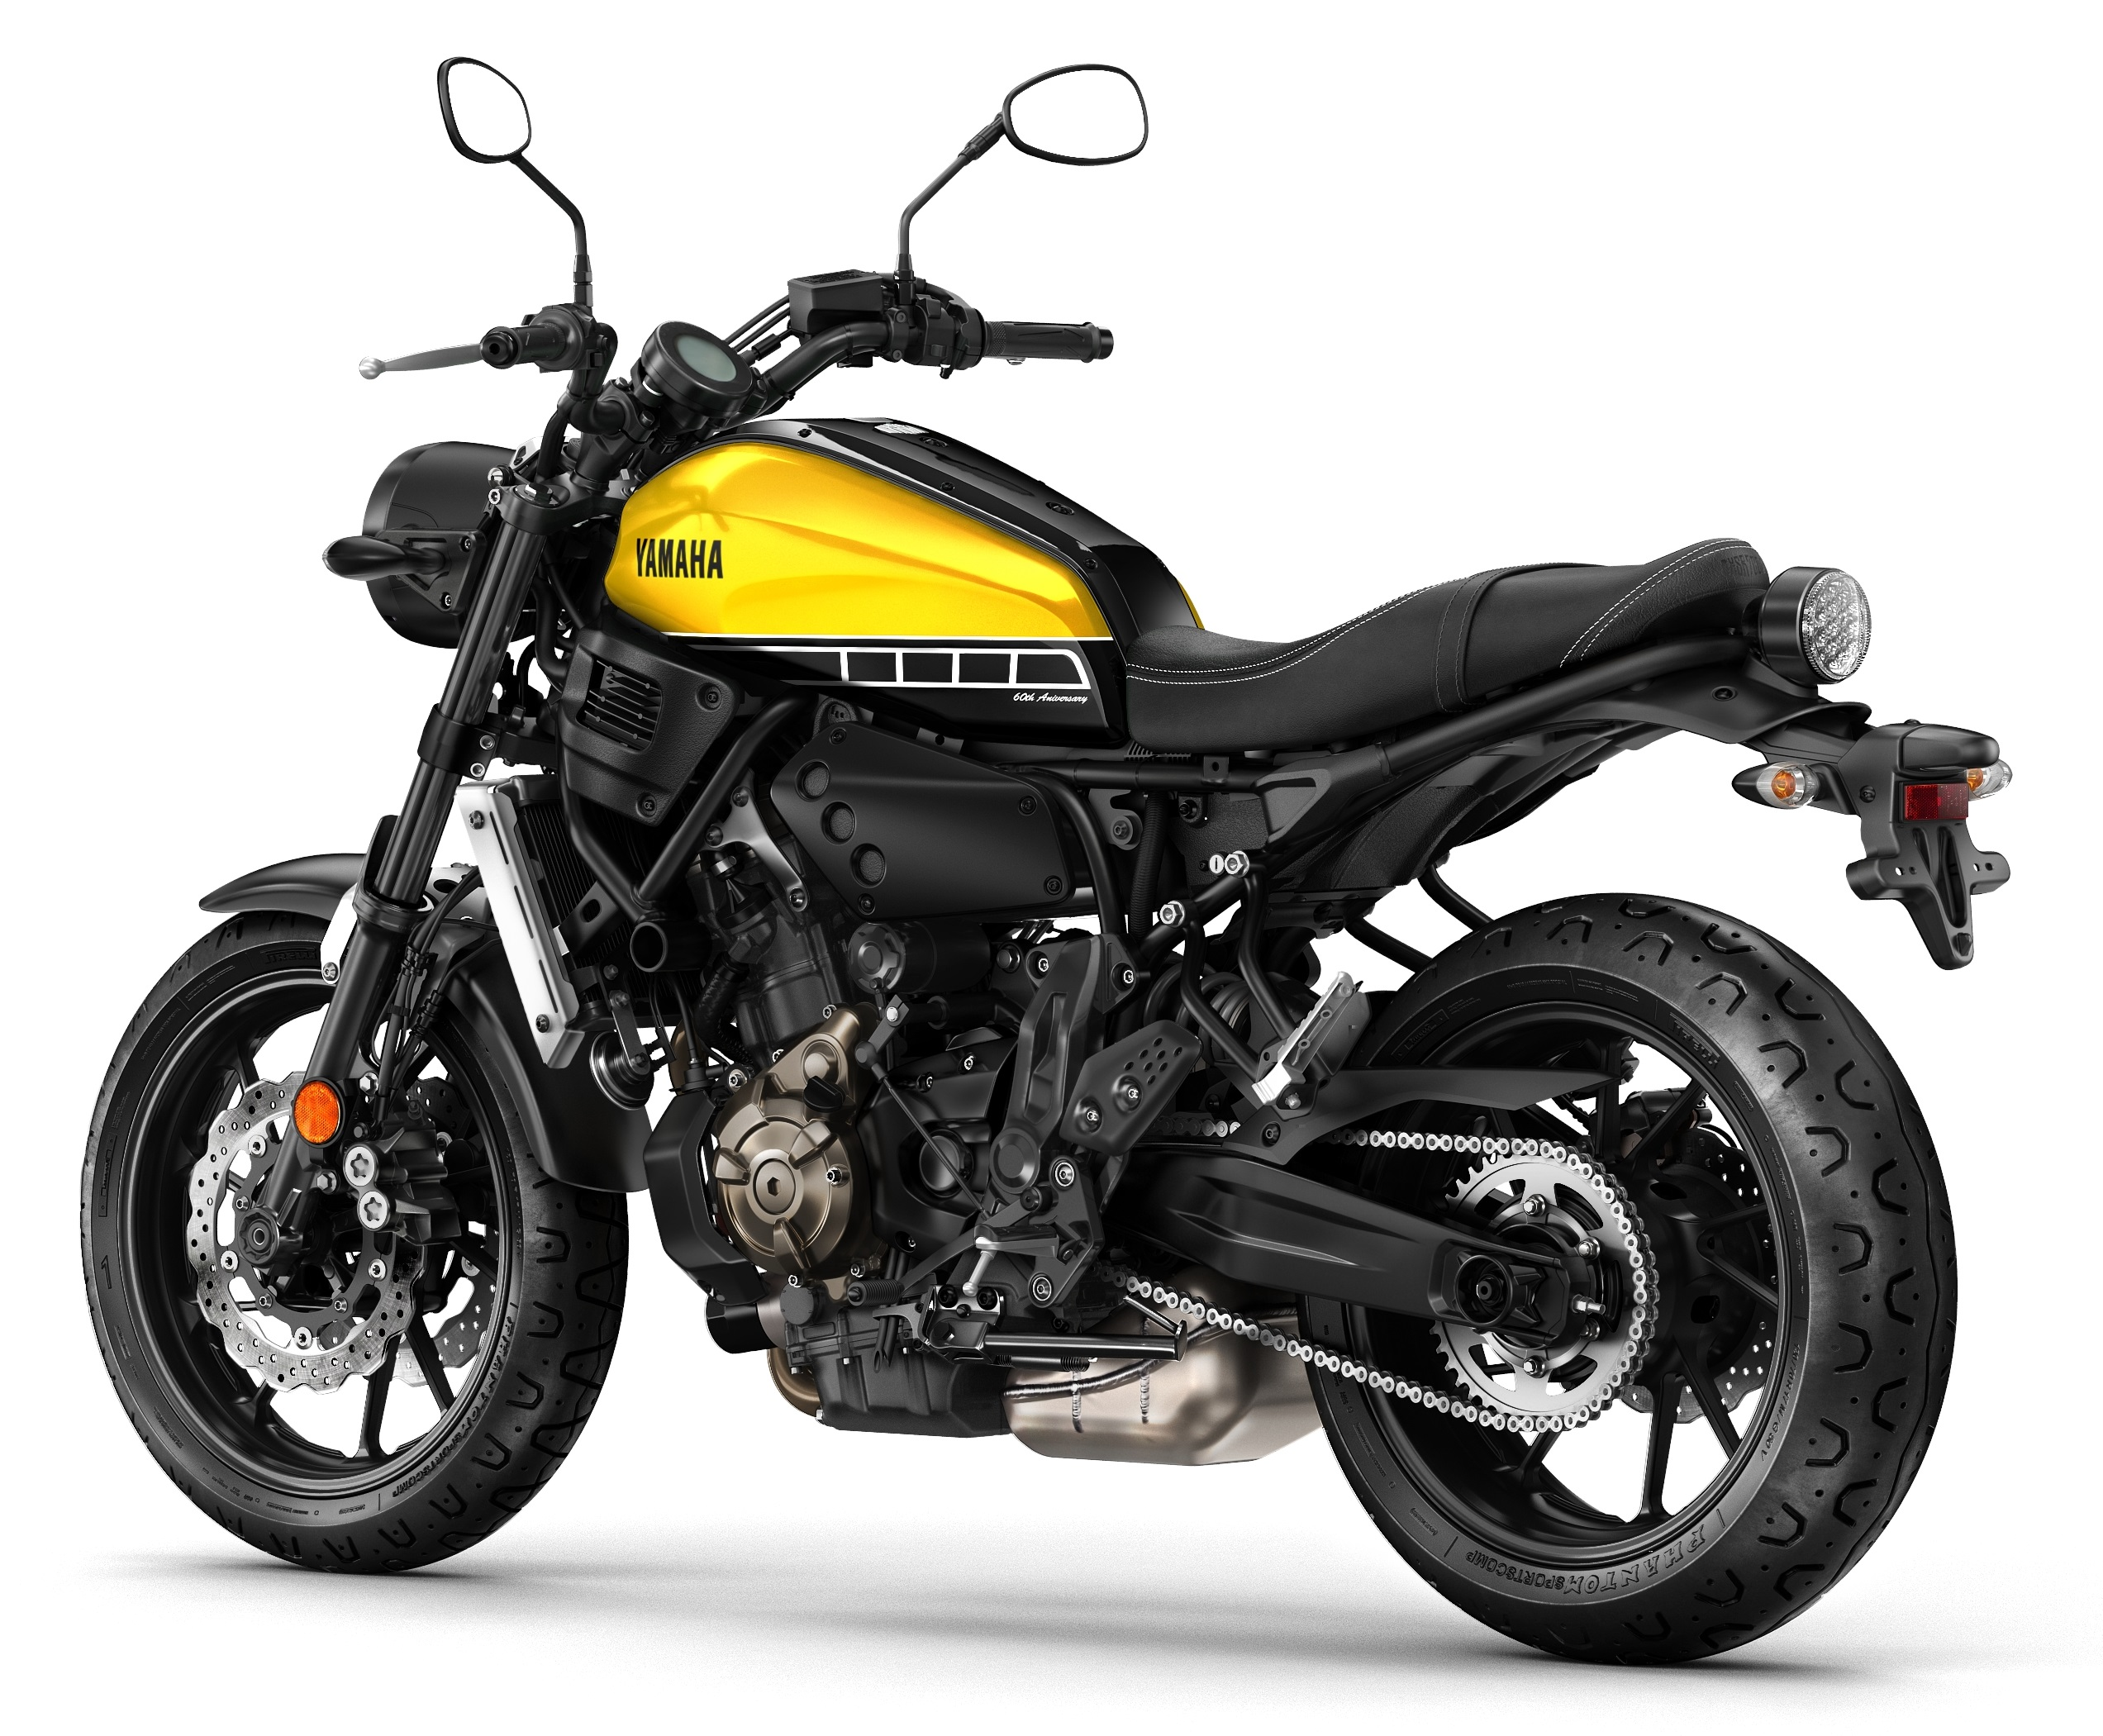 Yamaha XSR700 O For Sale Price Guide The Bike Market